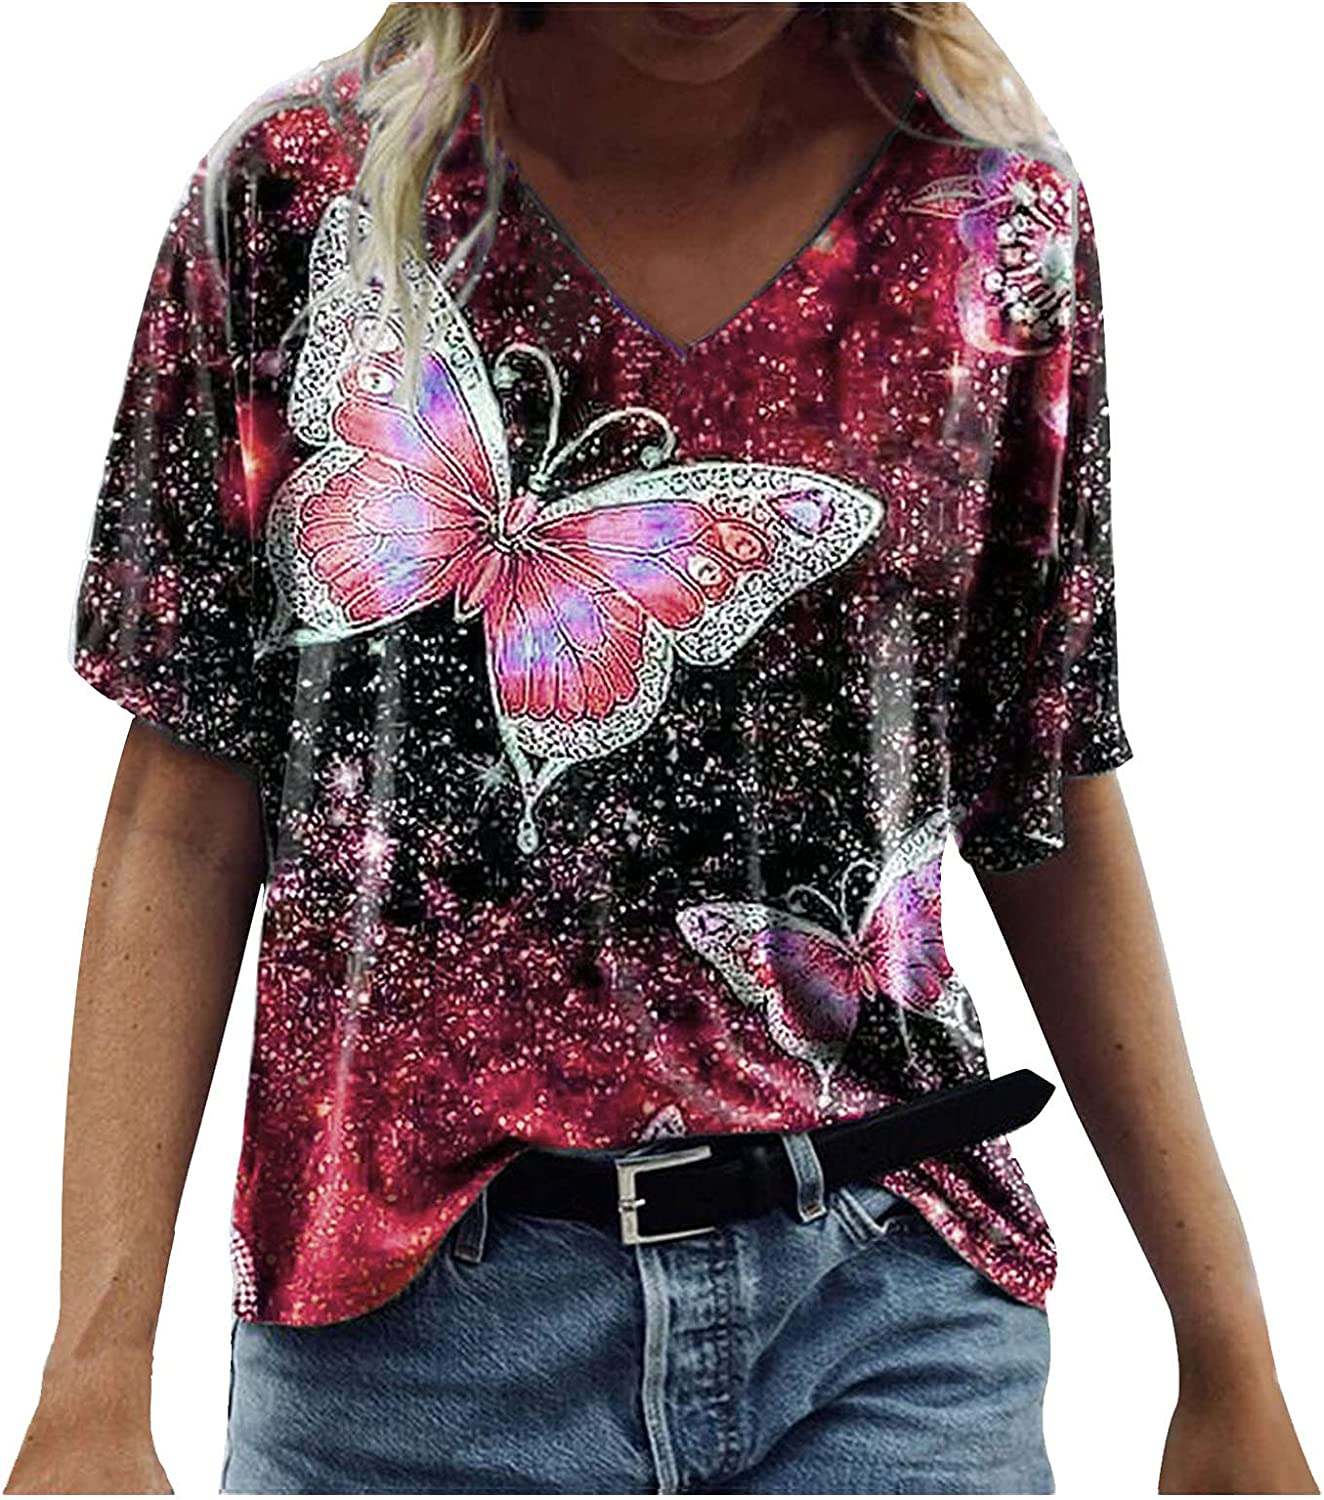 Women's Summer Short Sleeve Tunic Tops V Neck Colorful Floral Butterfly Printed Tees Shirt Casual Comfy Blouses Tops